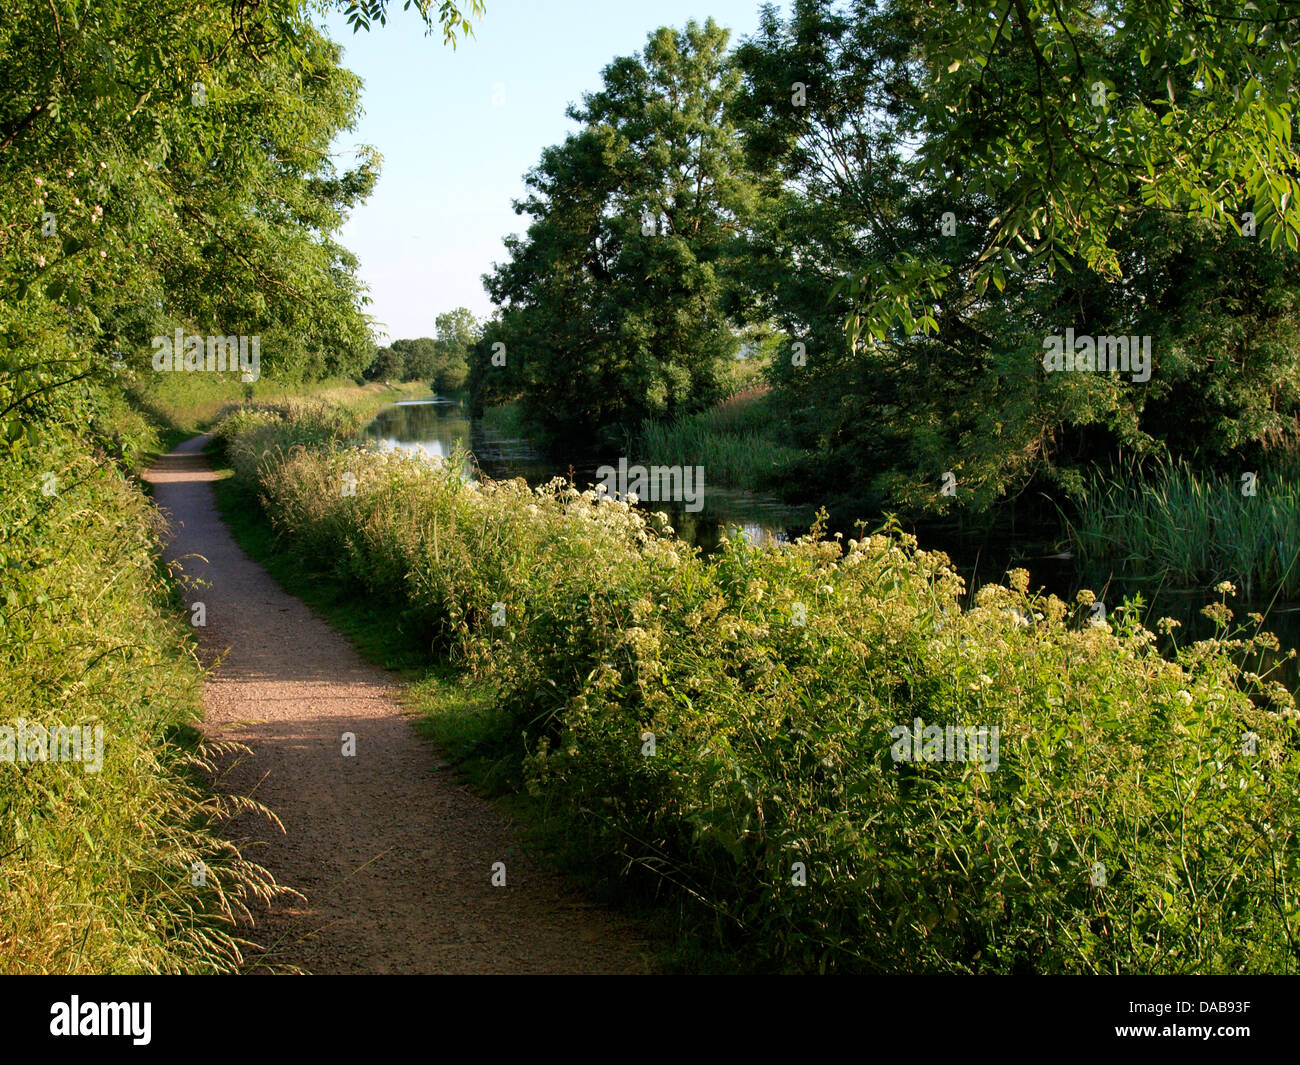 Towpath on The Grand Western Canal near Sampford Peverell, Devon. UK - Stock Image